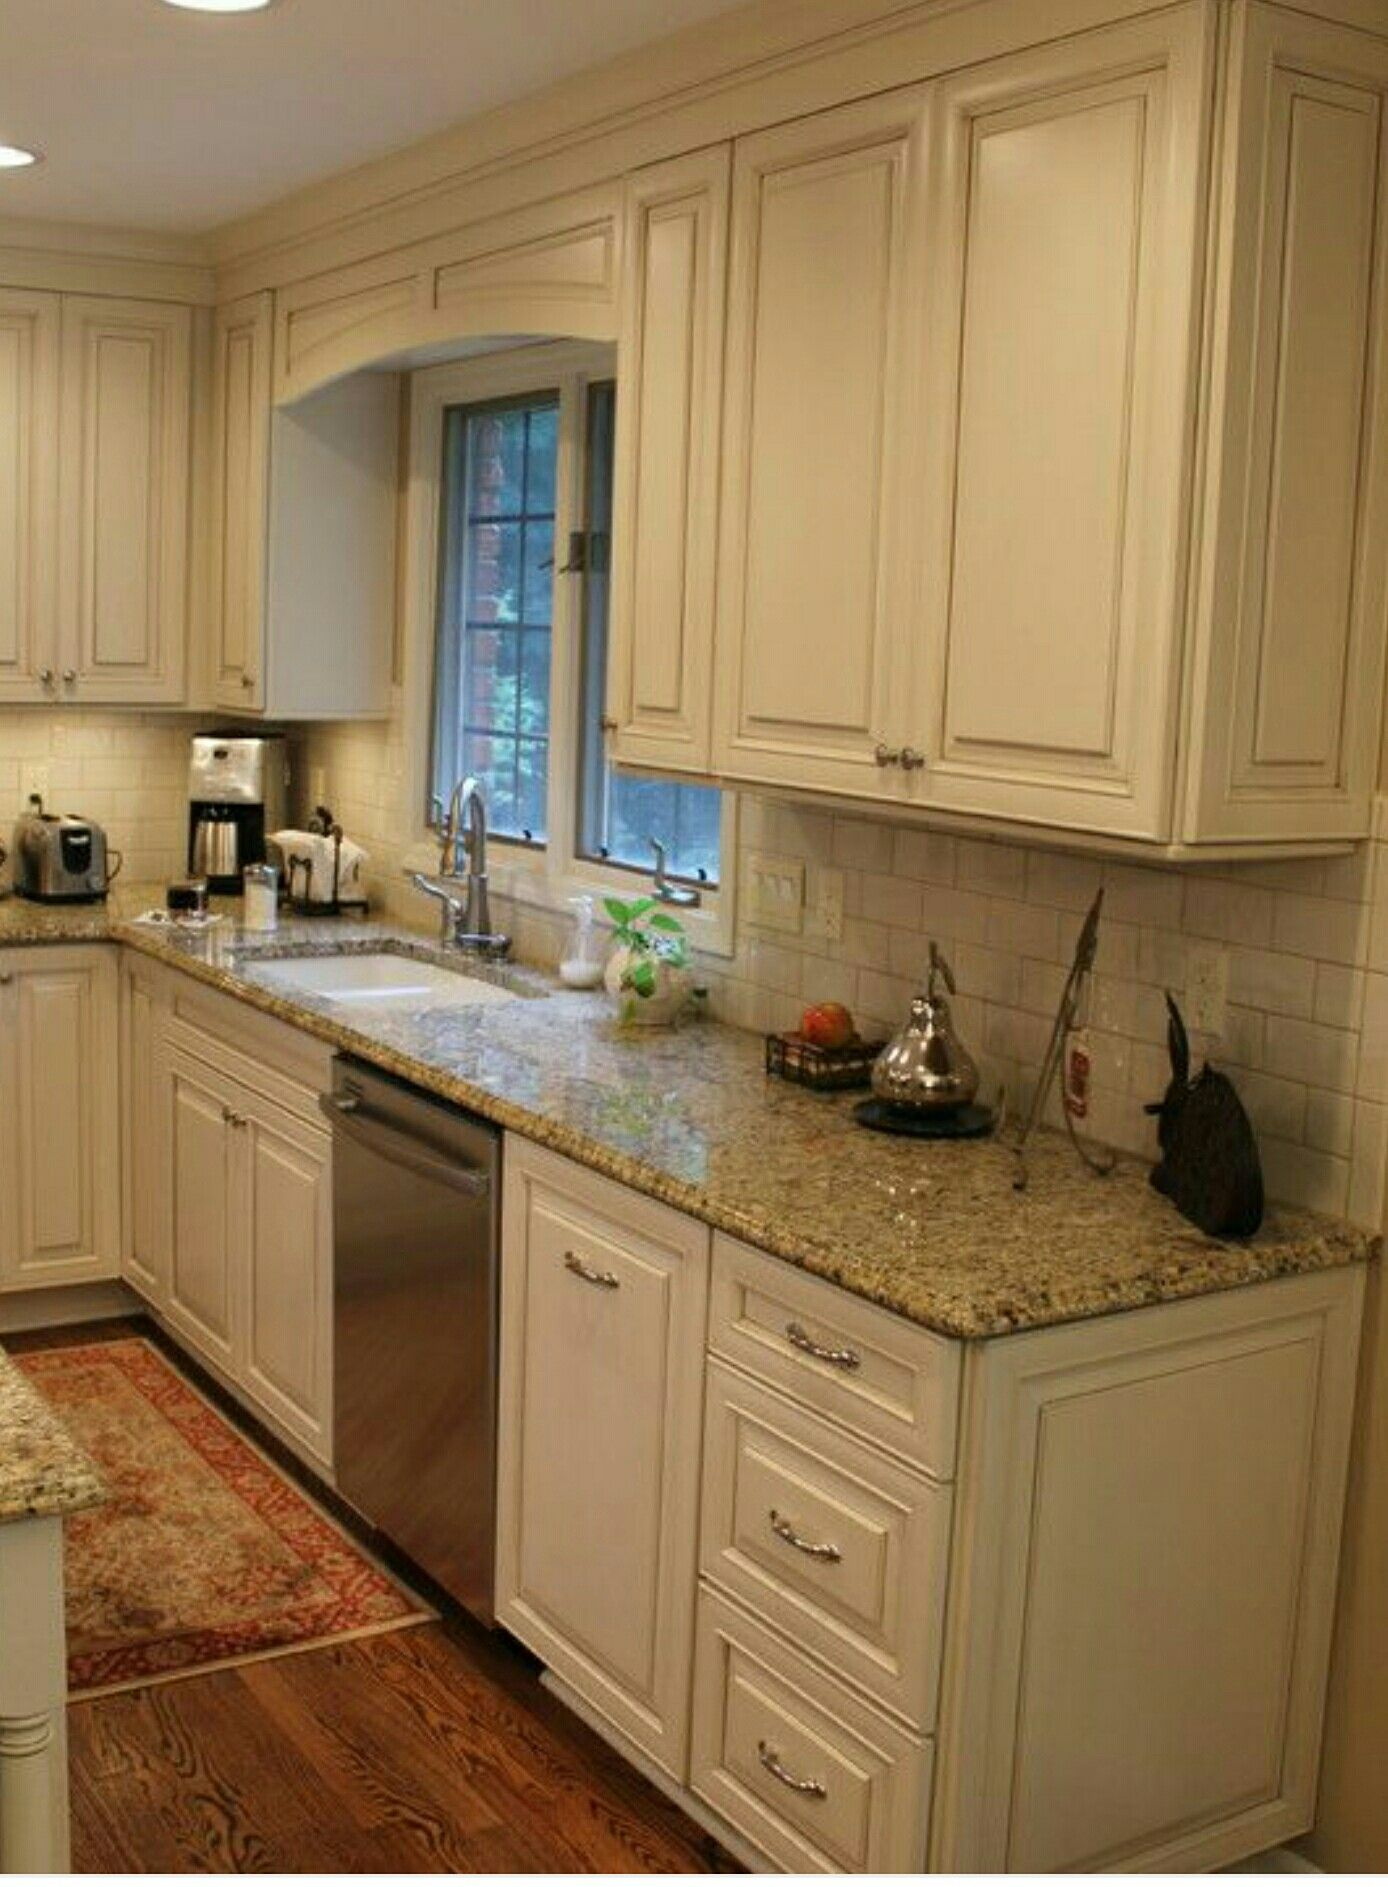 White cabinets subway tile beige granite countertops Tan kitchen backsplash